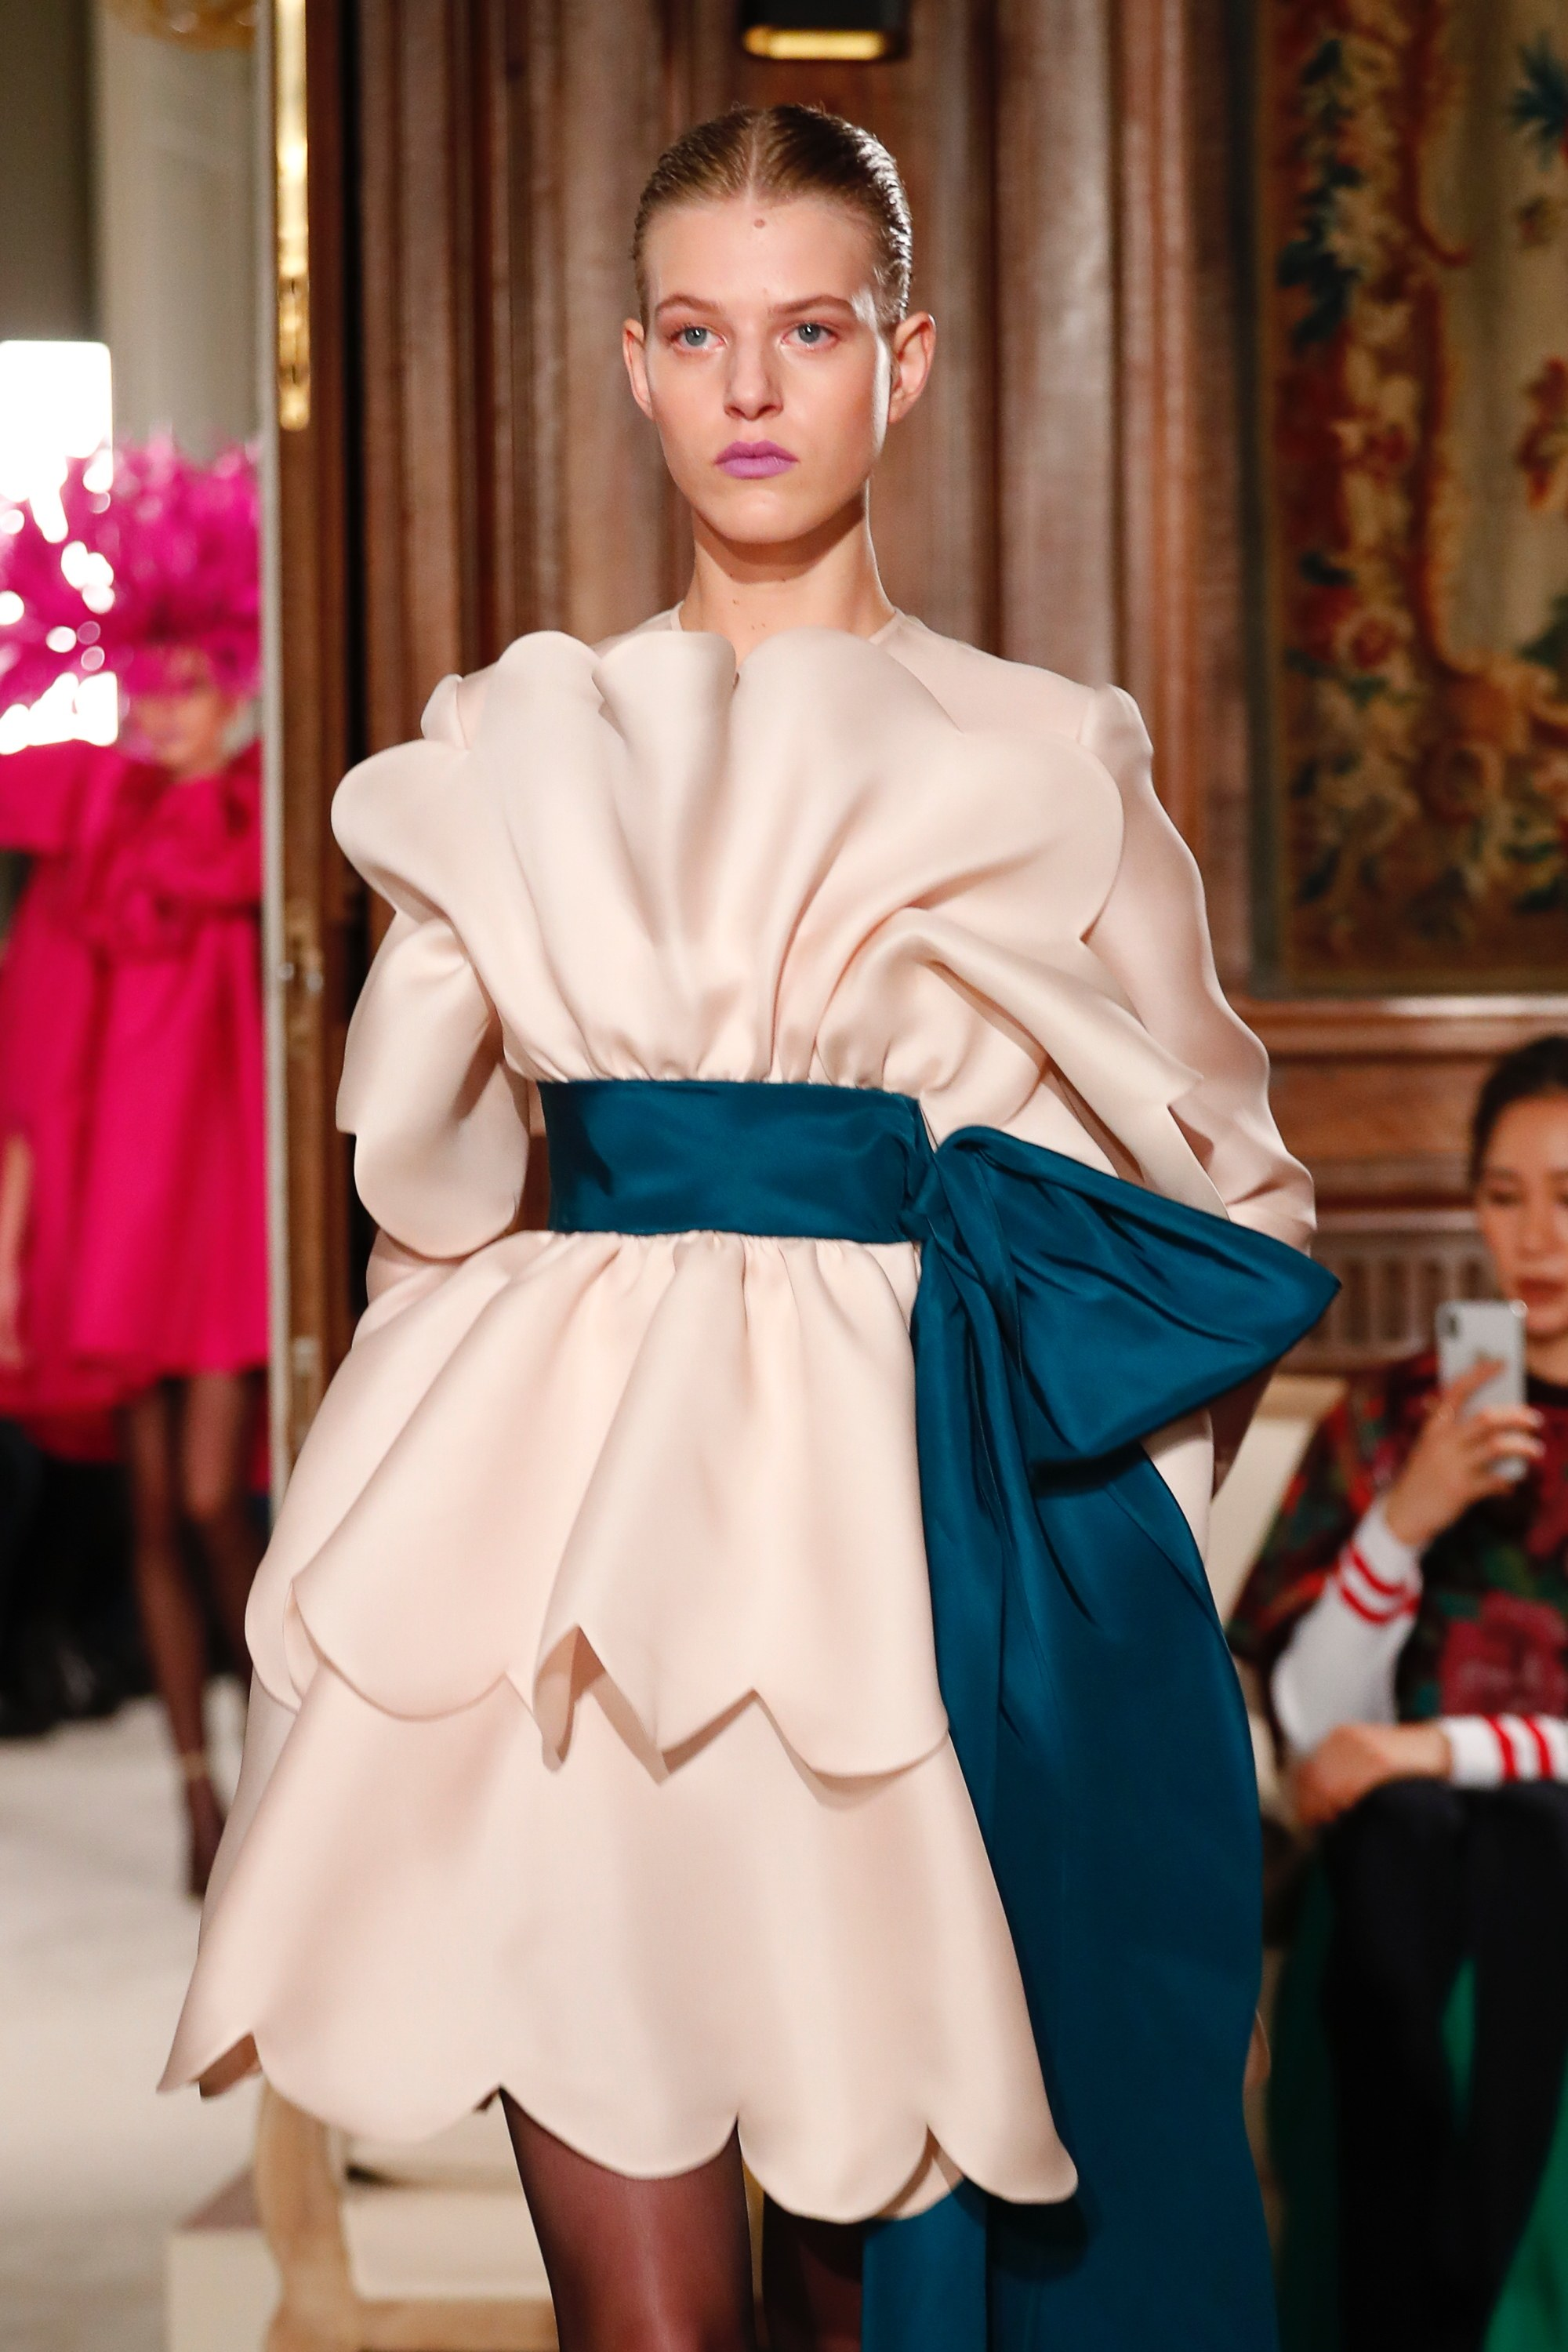 PARIS- Model, walks the runway at the Schiaparelli Show during Paris Fashion Week- Haute Couture Spring /Summer  2018   <P> Pictured: Models Valentino <B>Ref: SPL1650262  240118  </B><BR/> Picture by: NPictures / Splash News<BR/> </P><P> <B>Splash News and Pictures</B><BR/> Los Angeles:310-821-2666<BR/> New York:212-619-2666<BR/> London:870-934-2666<BR/> <span id=